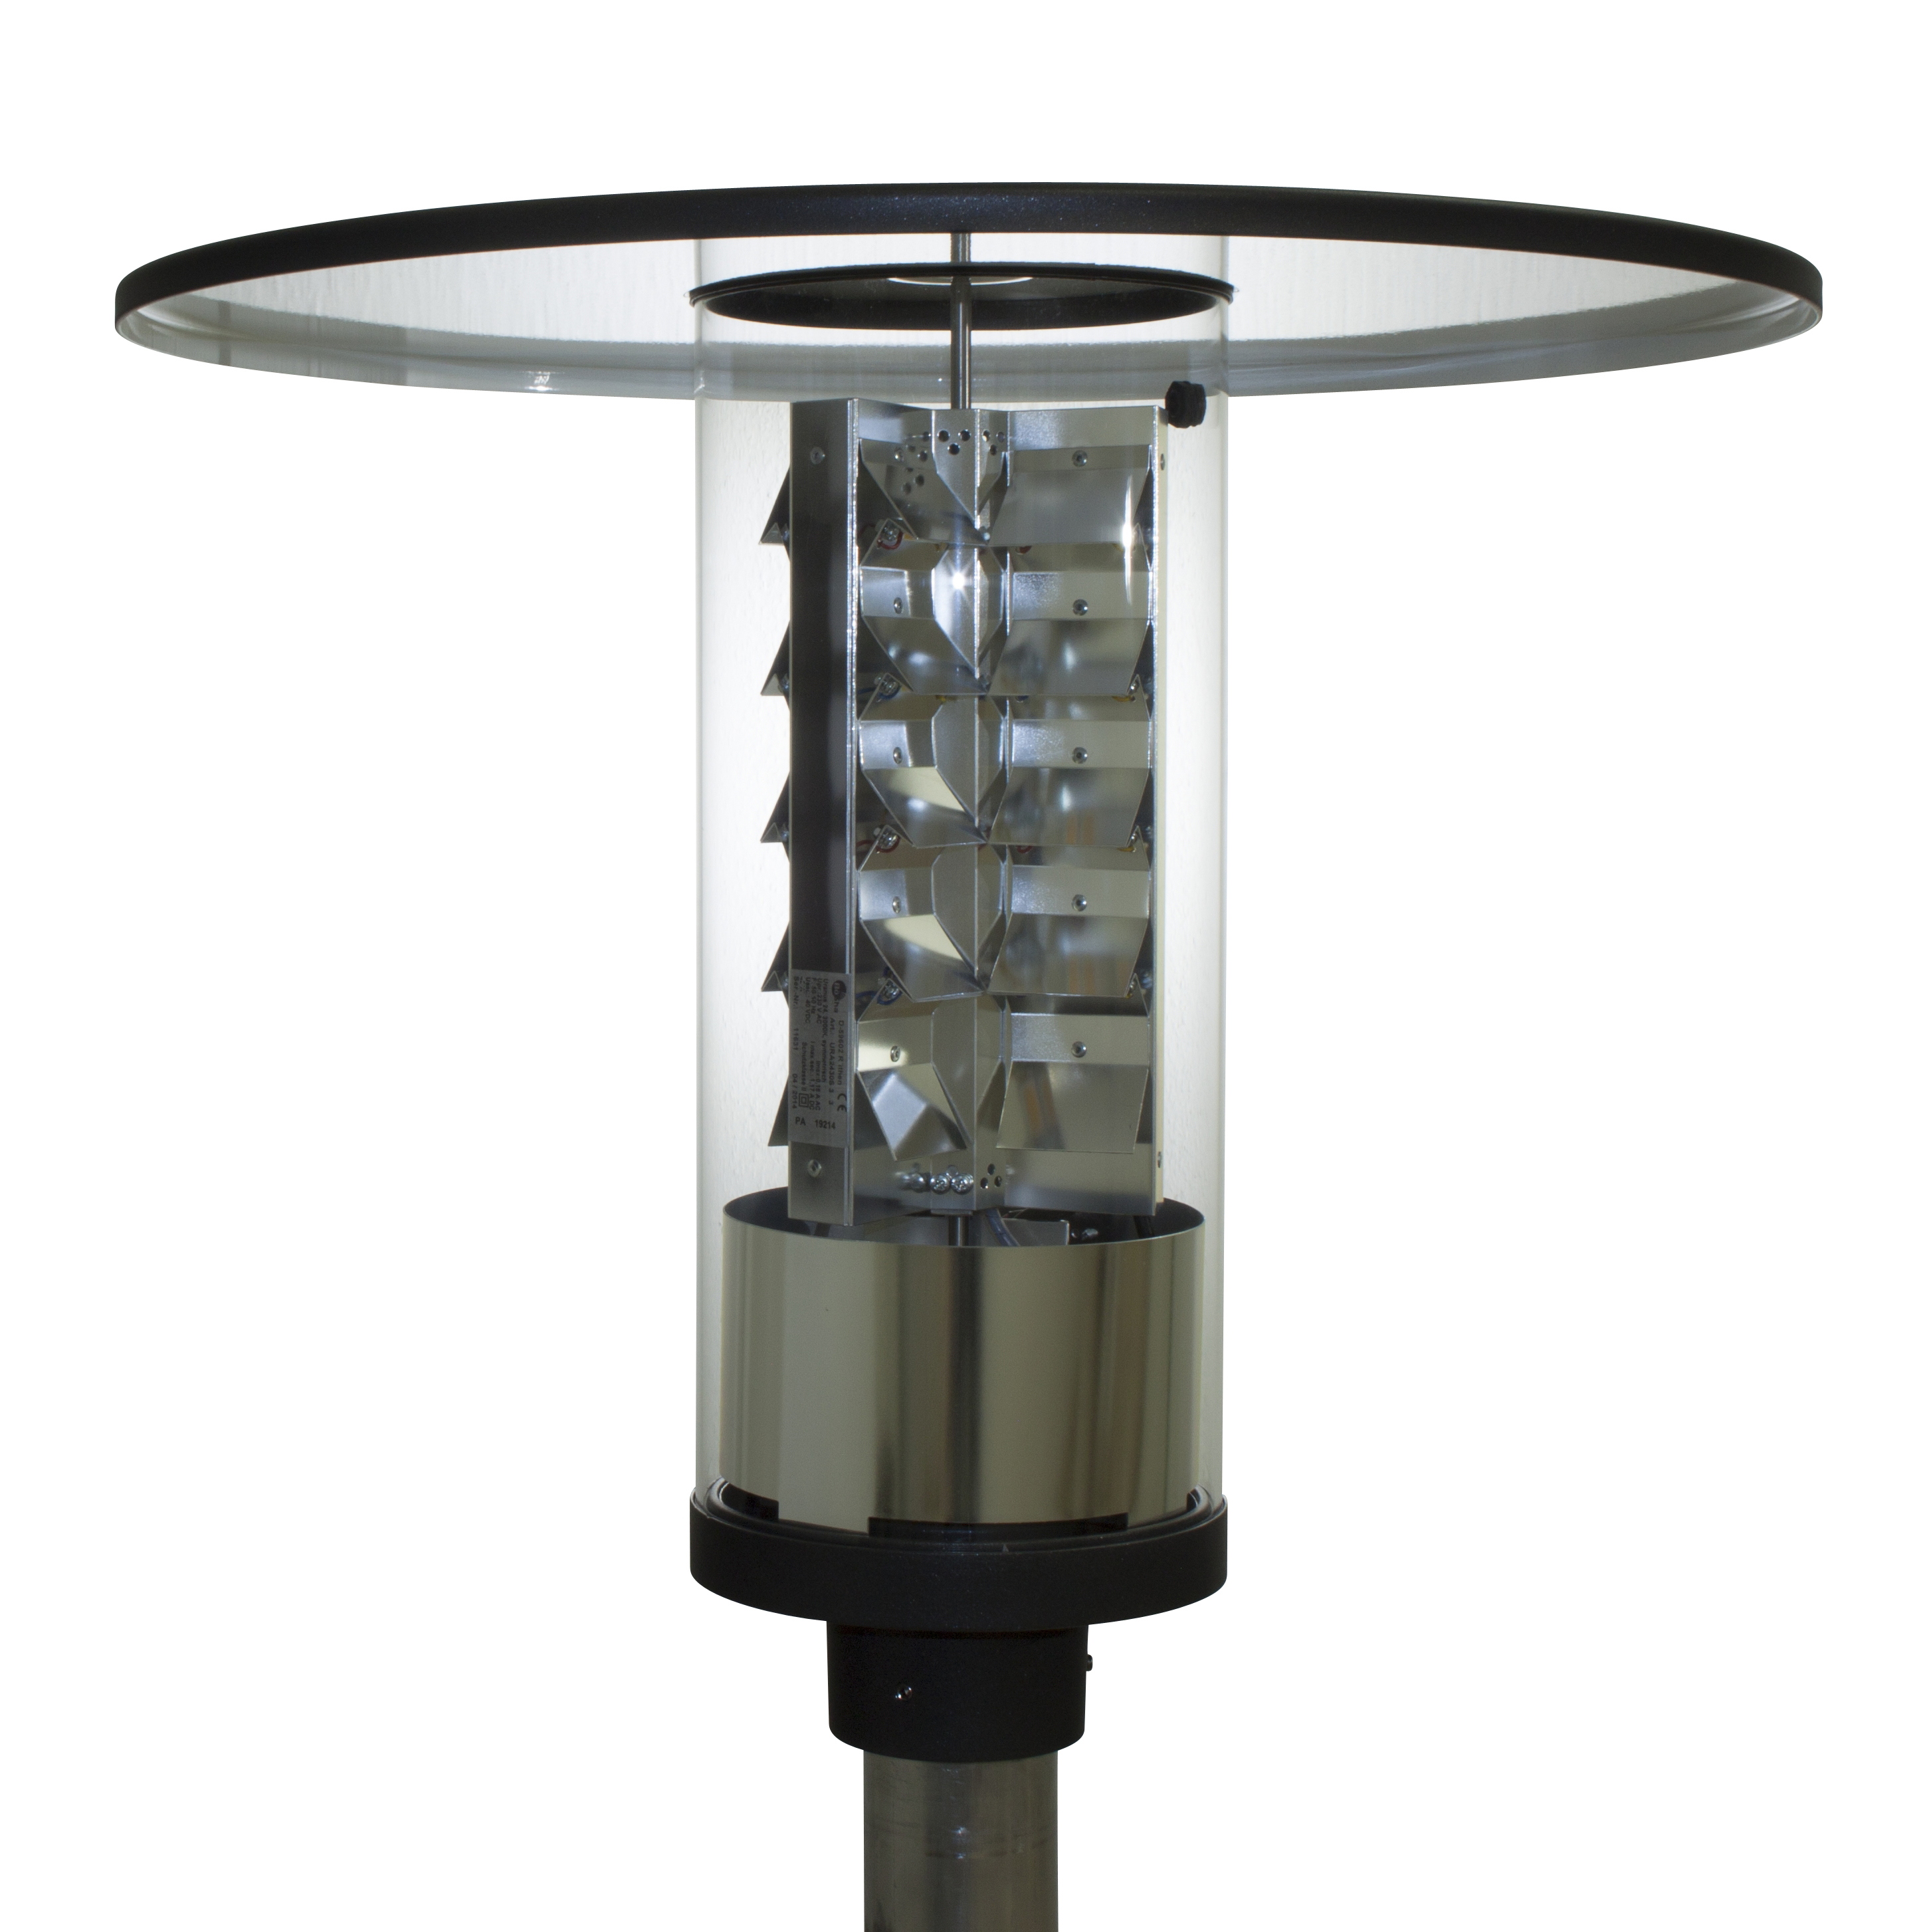 LED Round Luminaire without Skylight - with Disk Roof